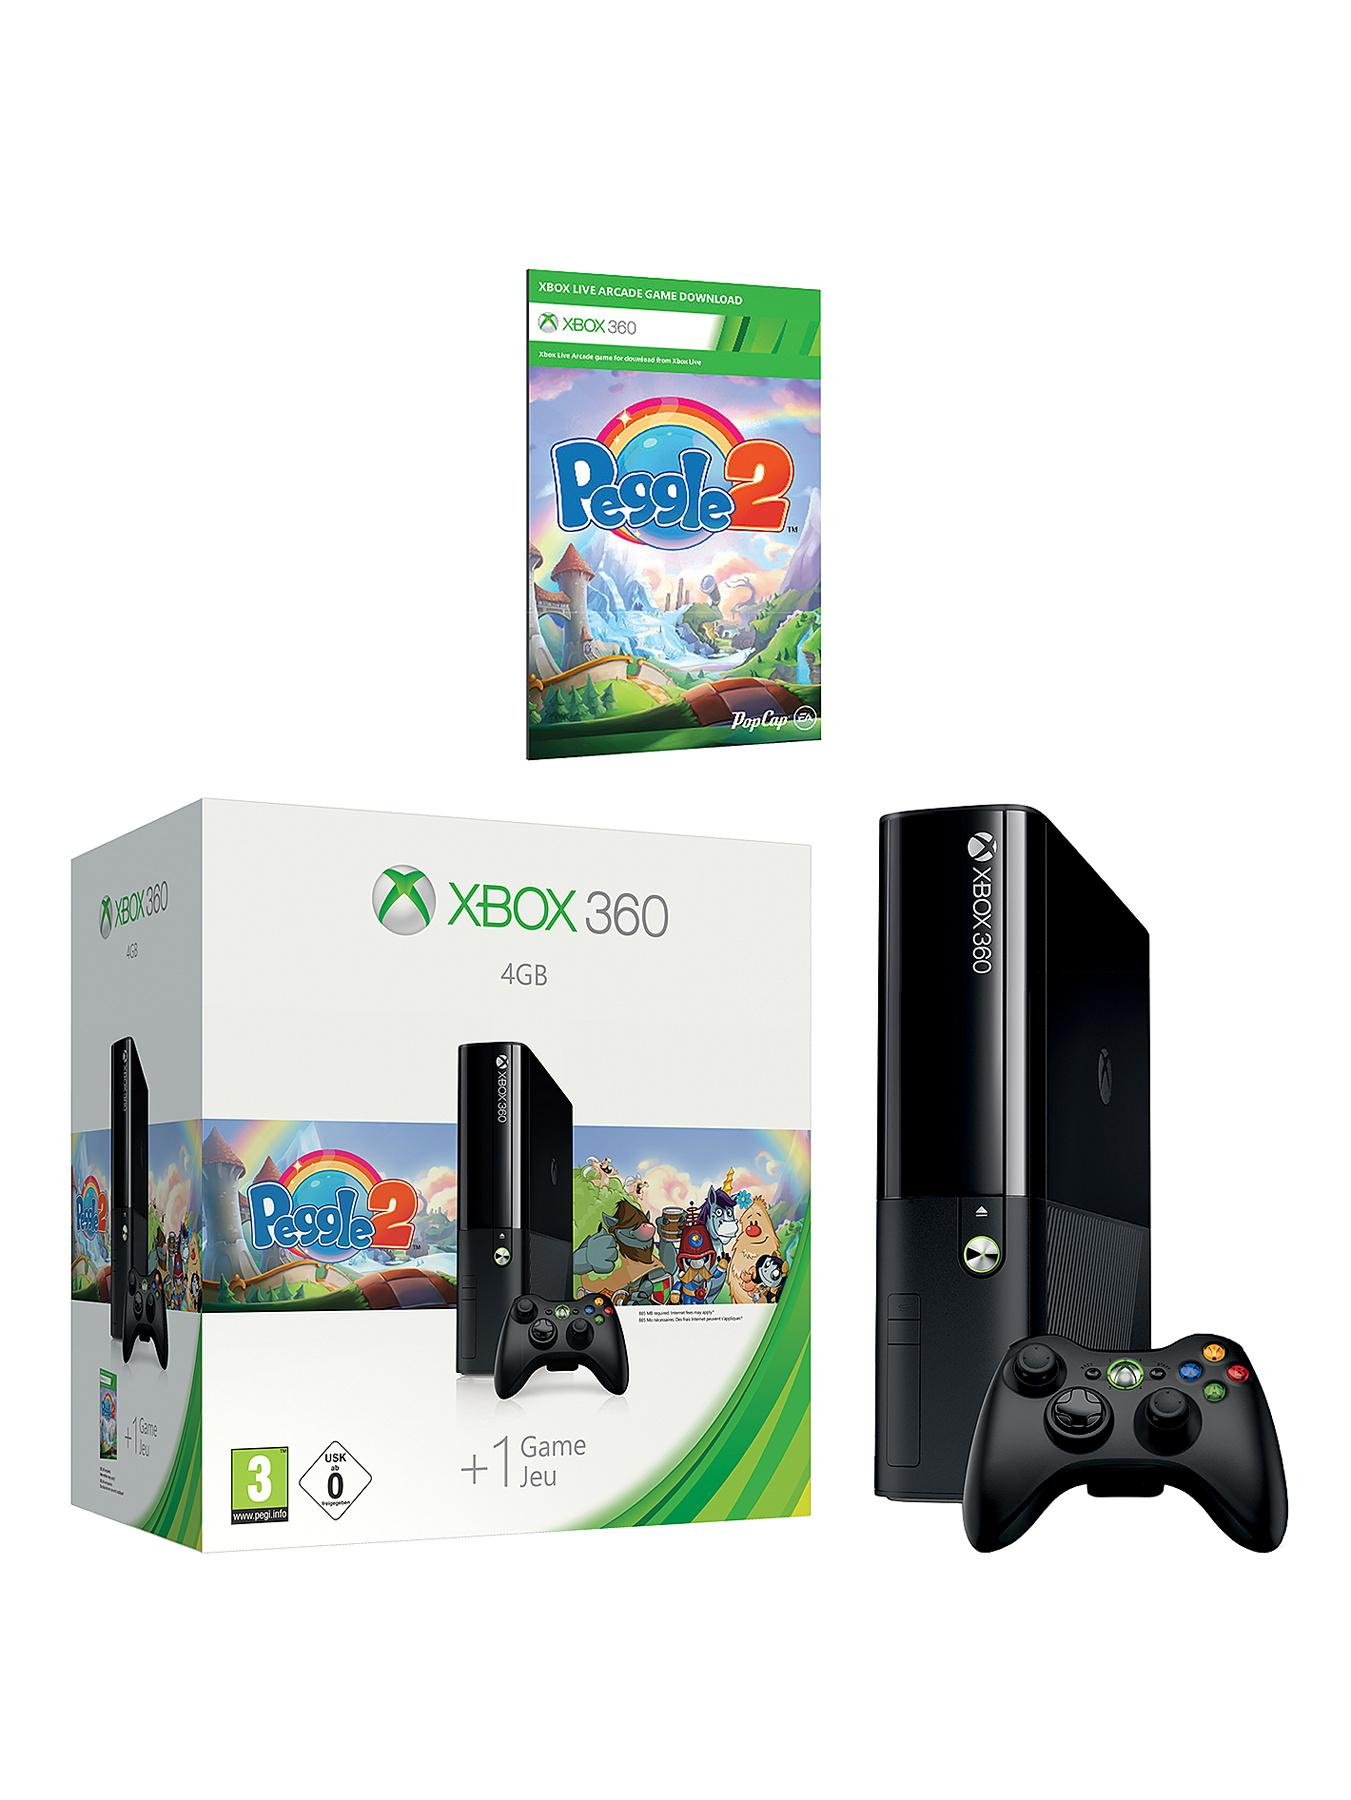 XBOX 360 4Gb Arcade Console with Peggle 2 and Optional 3 or 12 Months Xbox Live Gold